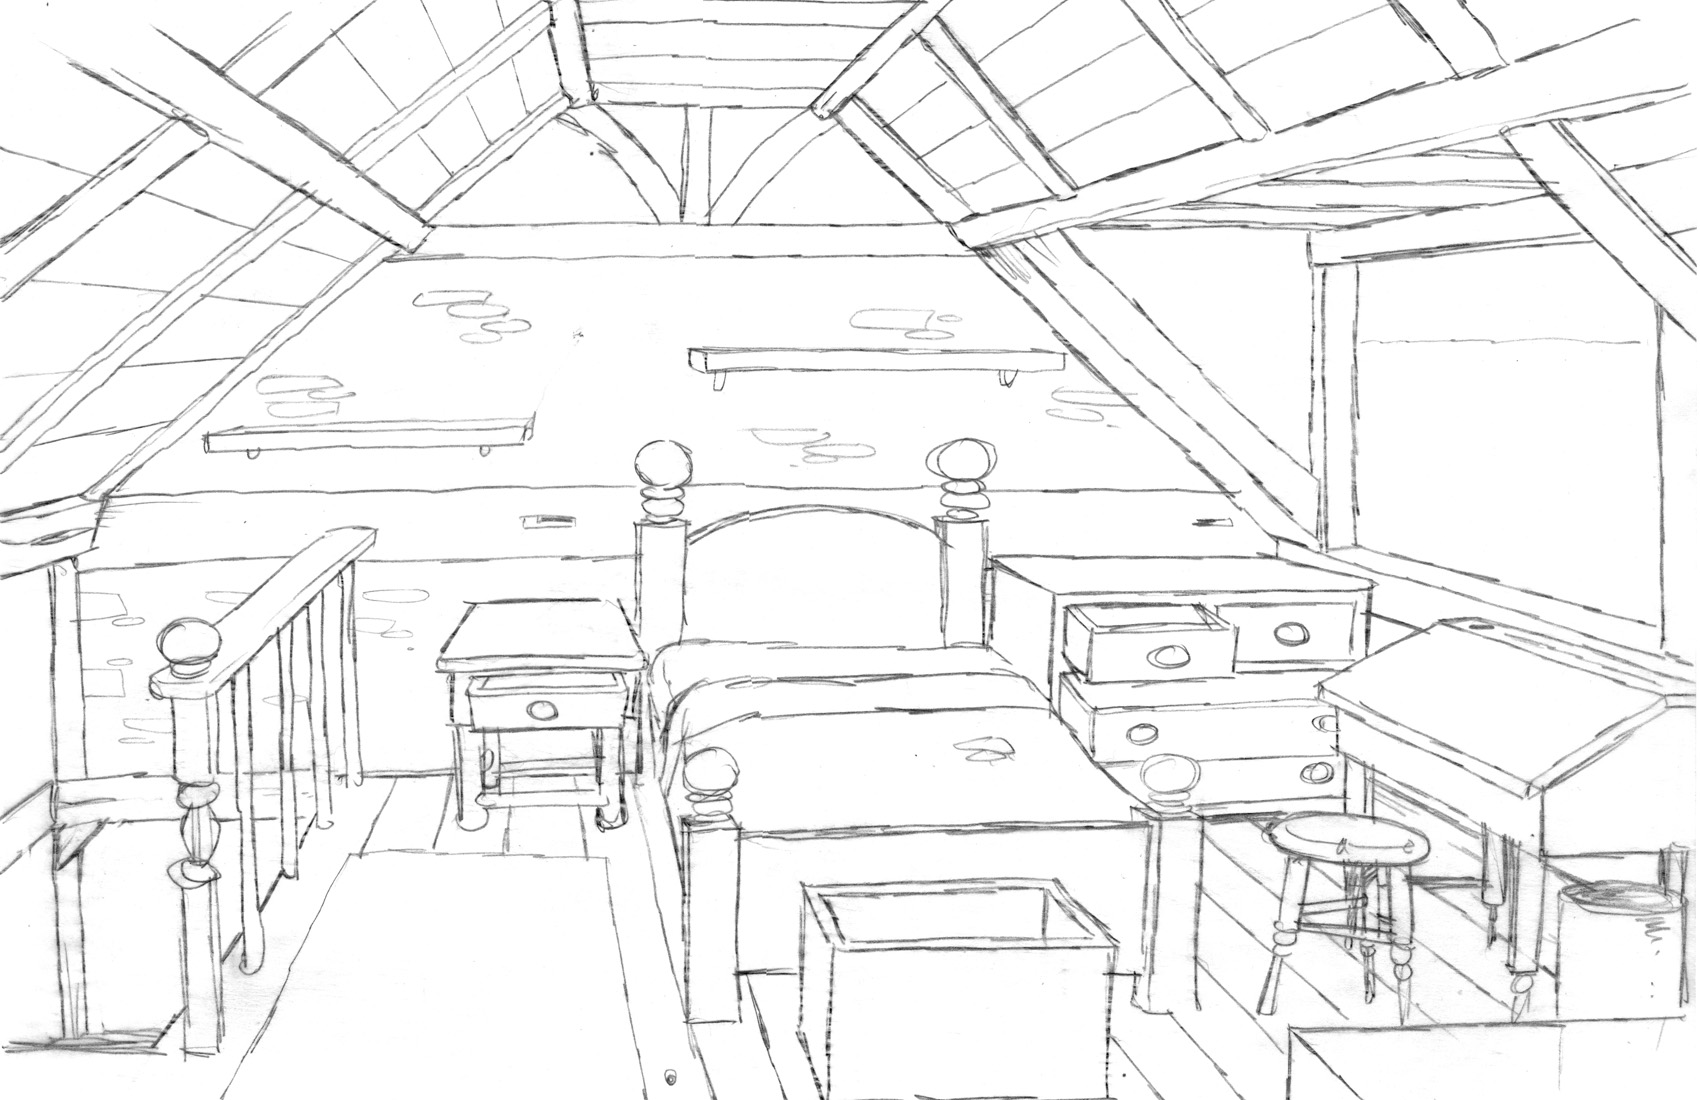 06_WP_03_Bedroom_Sketch_RoomRough_GreyOnlyLevels